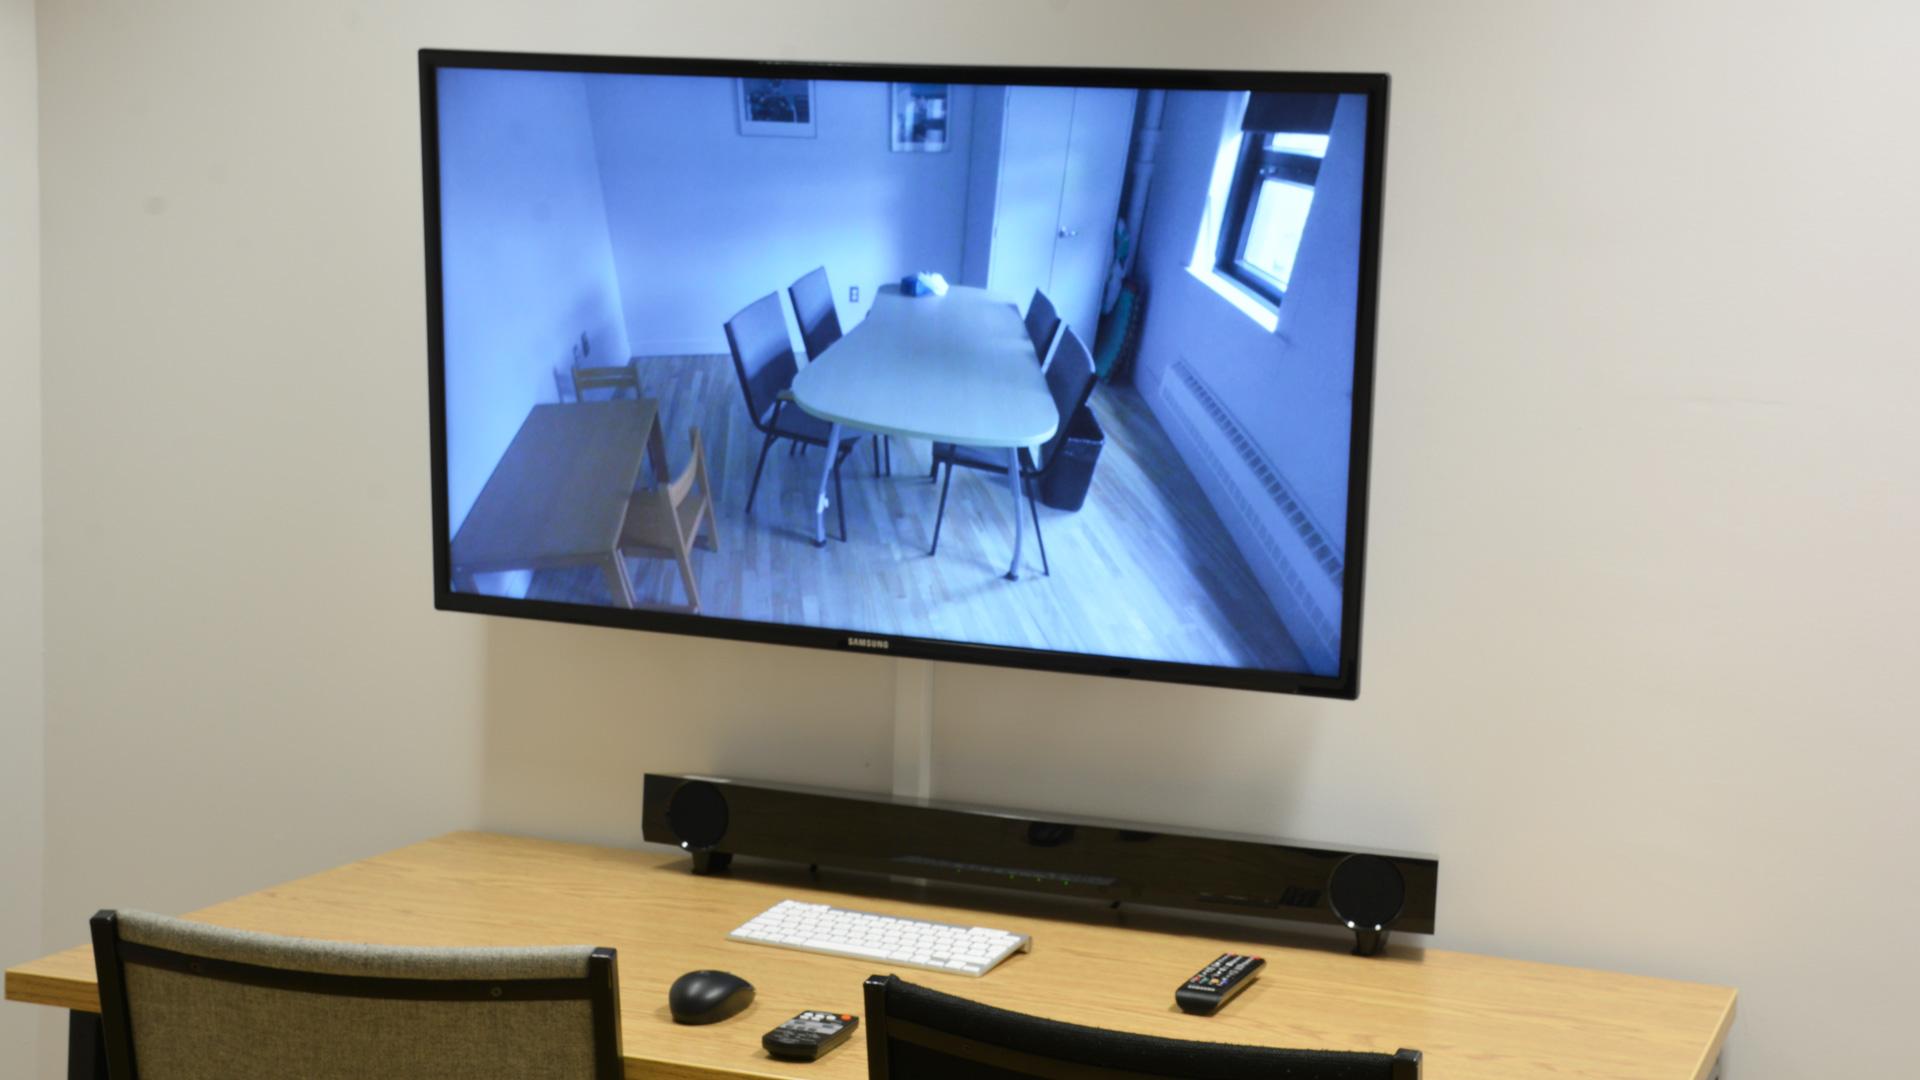 UQAM's consultation rooms